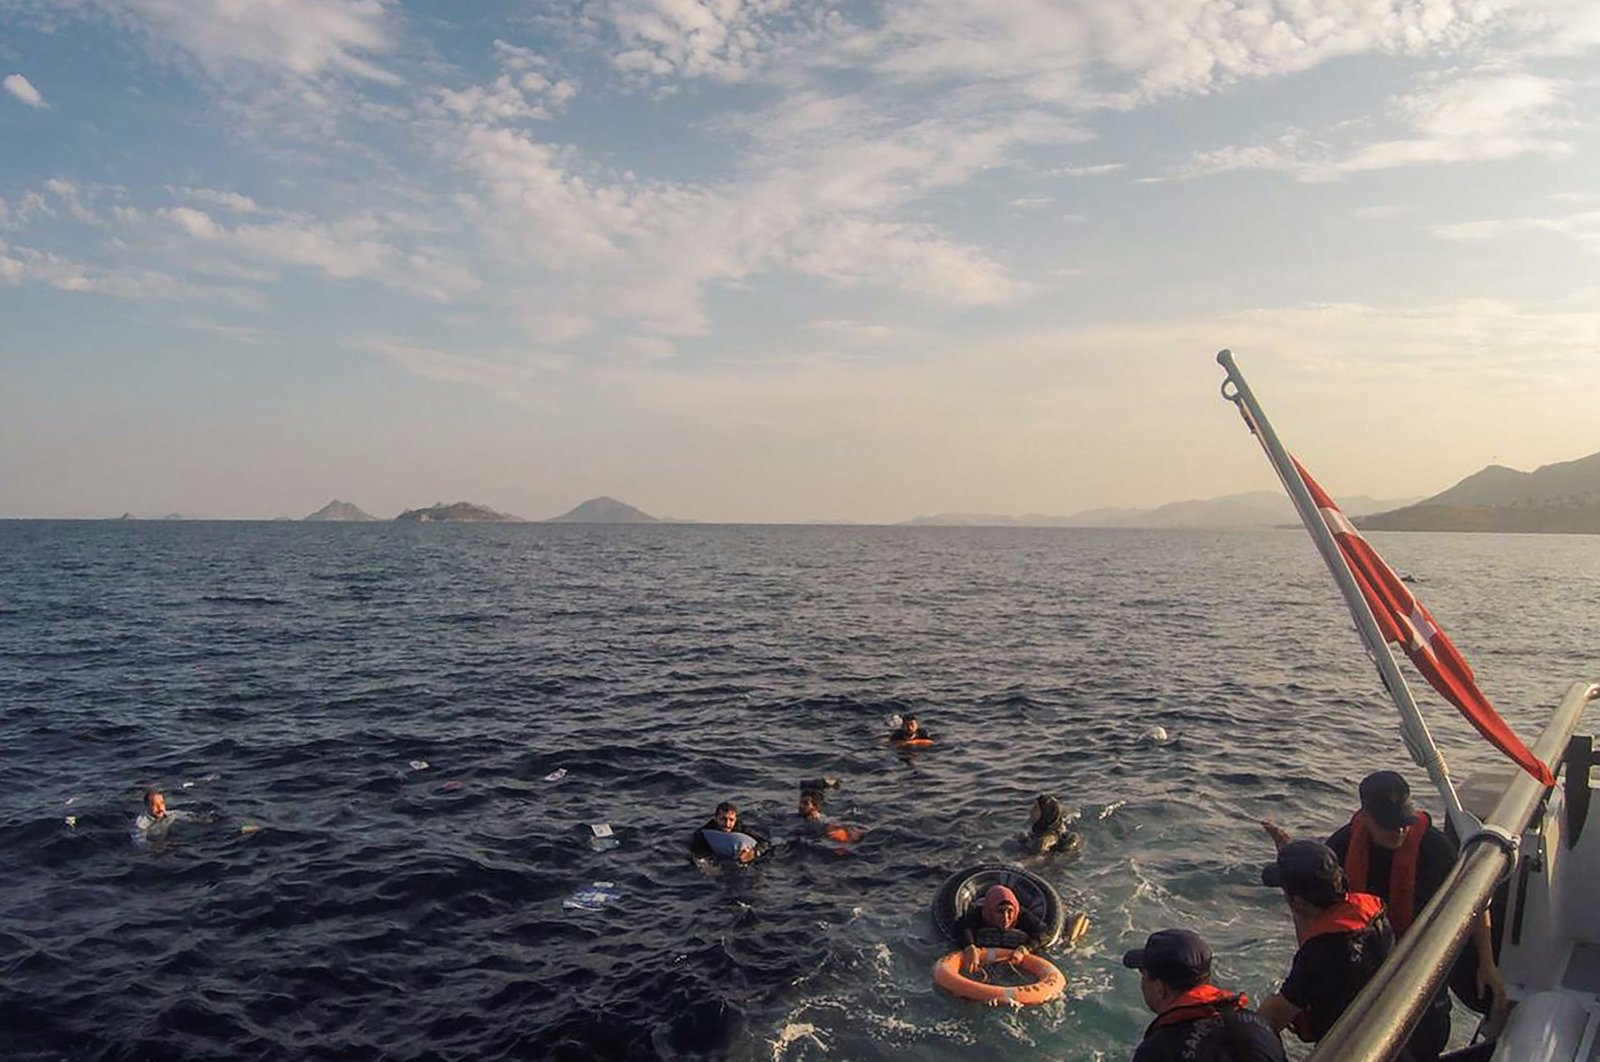 Turkish coastguard shows illegal migrants being rescued after their boat sank in the Aegean sea, off the coast of southwestern Turkey, June 17, 2019. (AFP Photo)